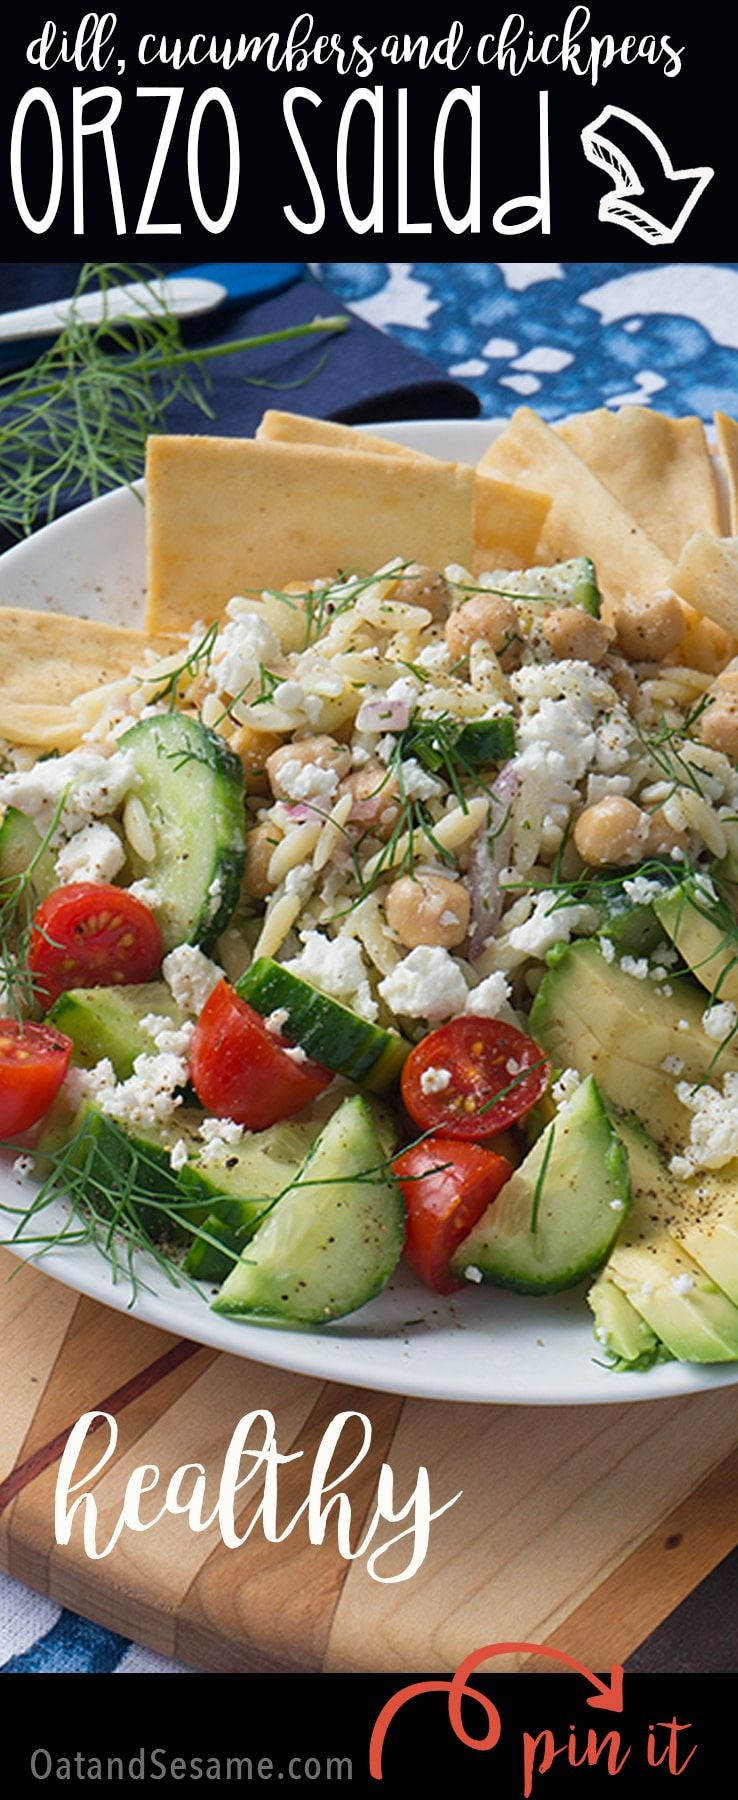 Fresh and Light Orzo Salad topped with cucumbers, chickpeas, dill | #Vegetarian | #Salad | #Lunch Time | #Recipes at OatandSesame.com